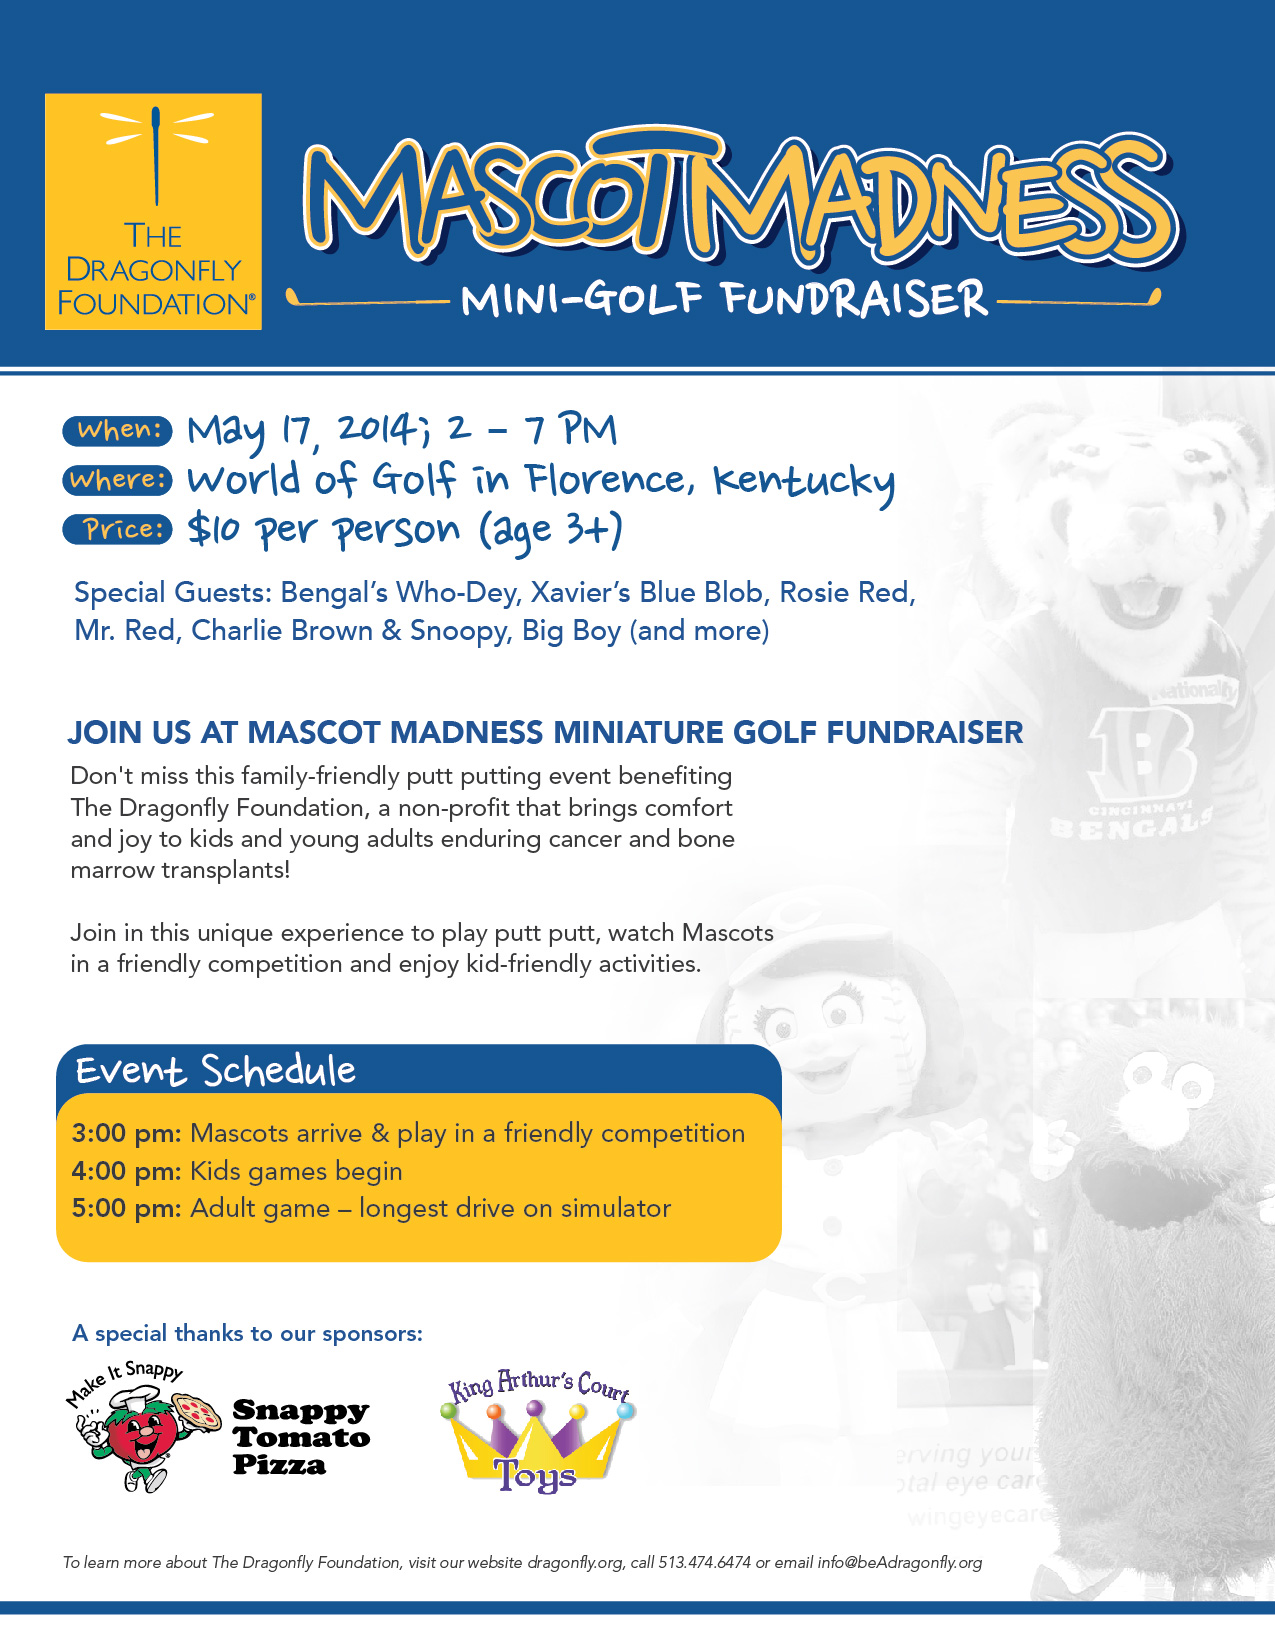 The Dragonfly Foundation: Mascot Madness Mini-Golf Fundraiser May 17, 2014